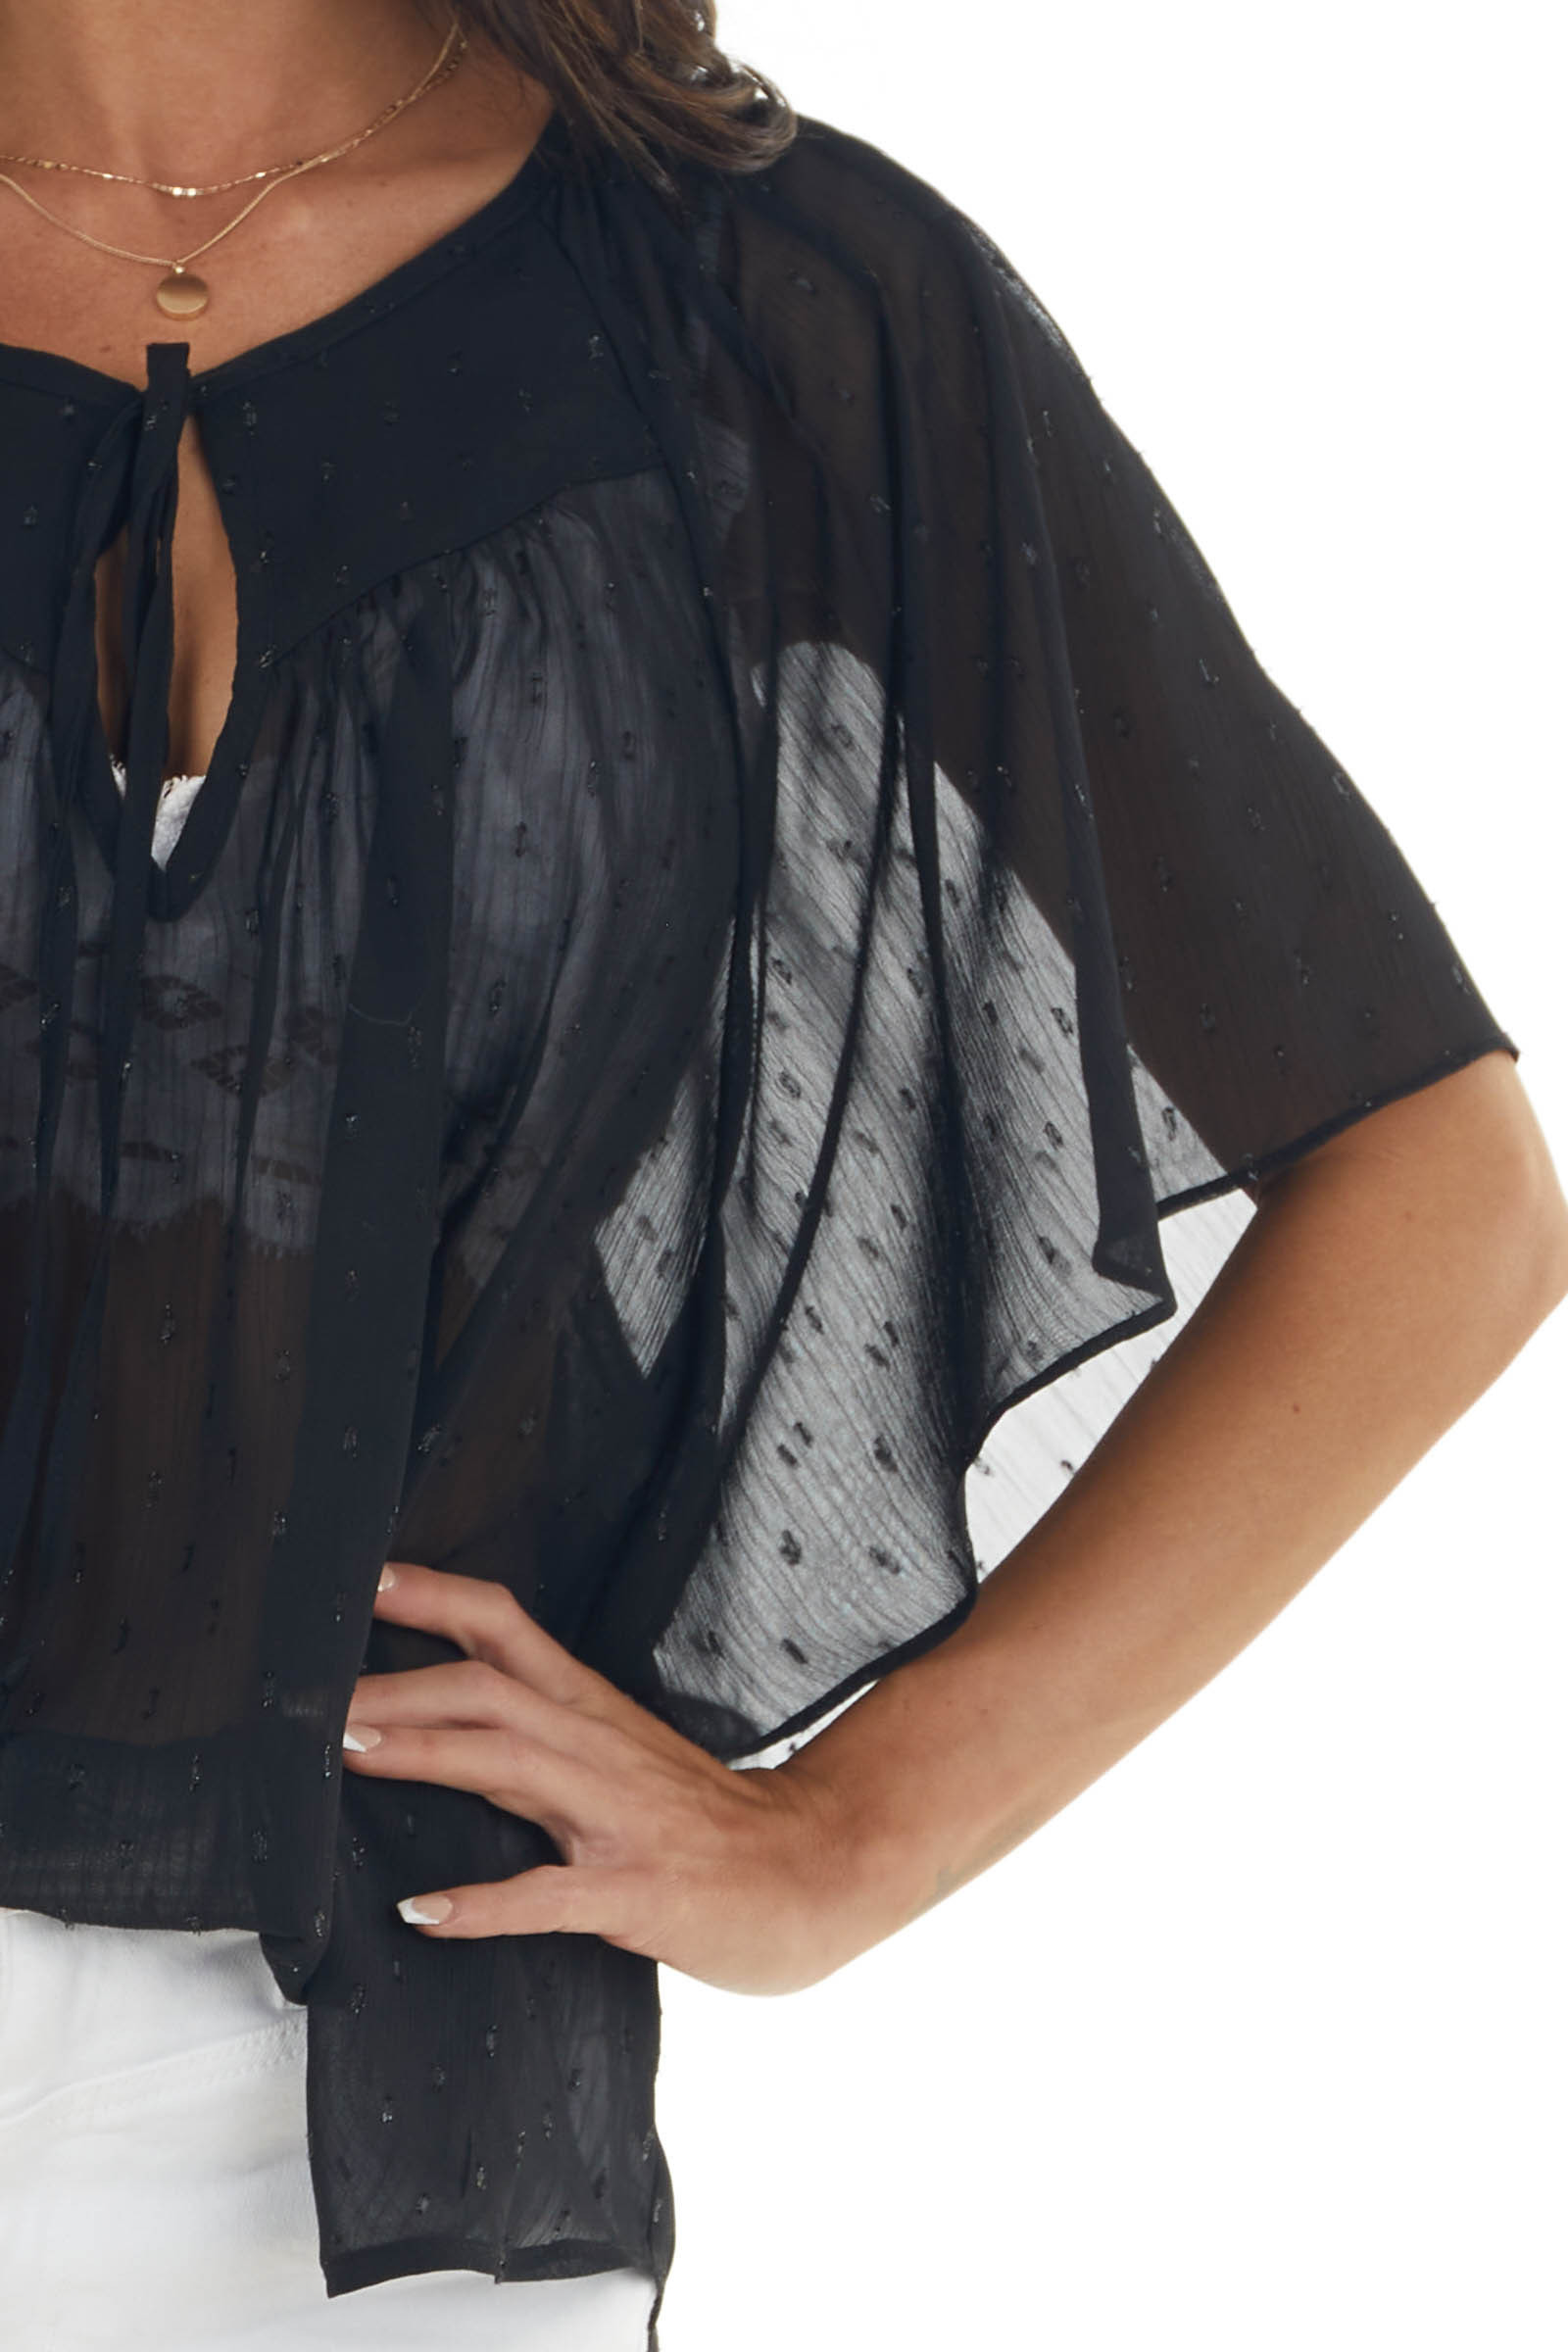 Black Swiss Dot Sheer Blouse with Front Tie